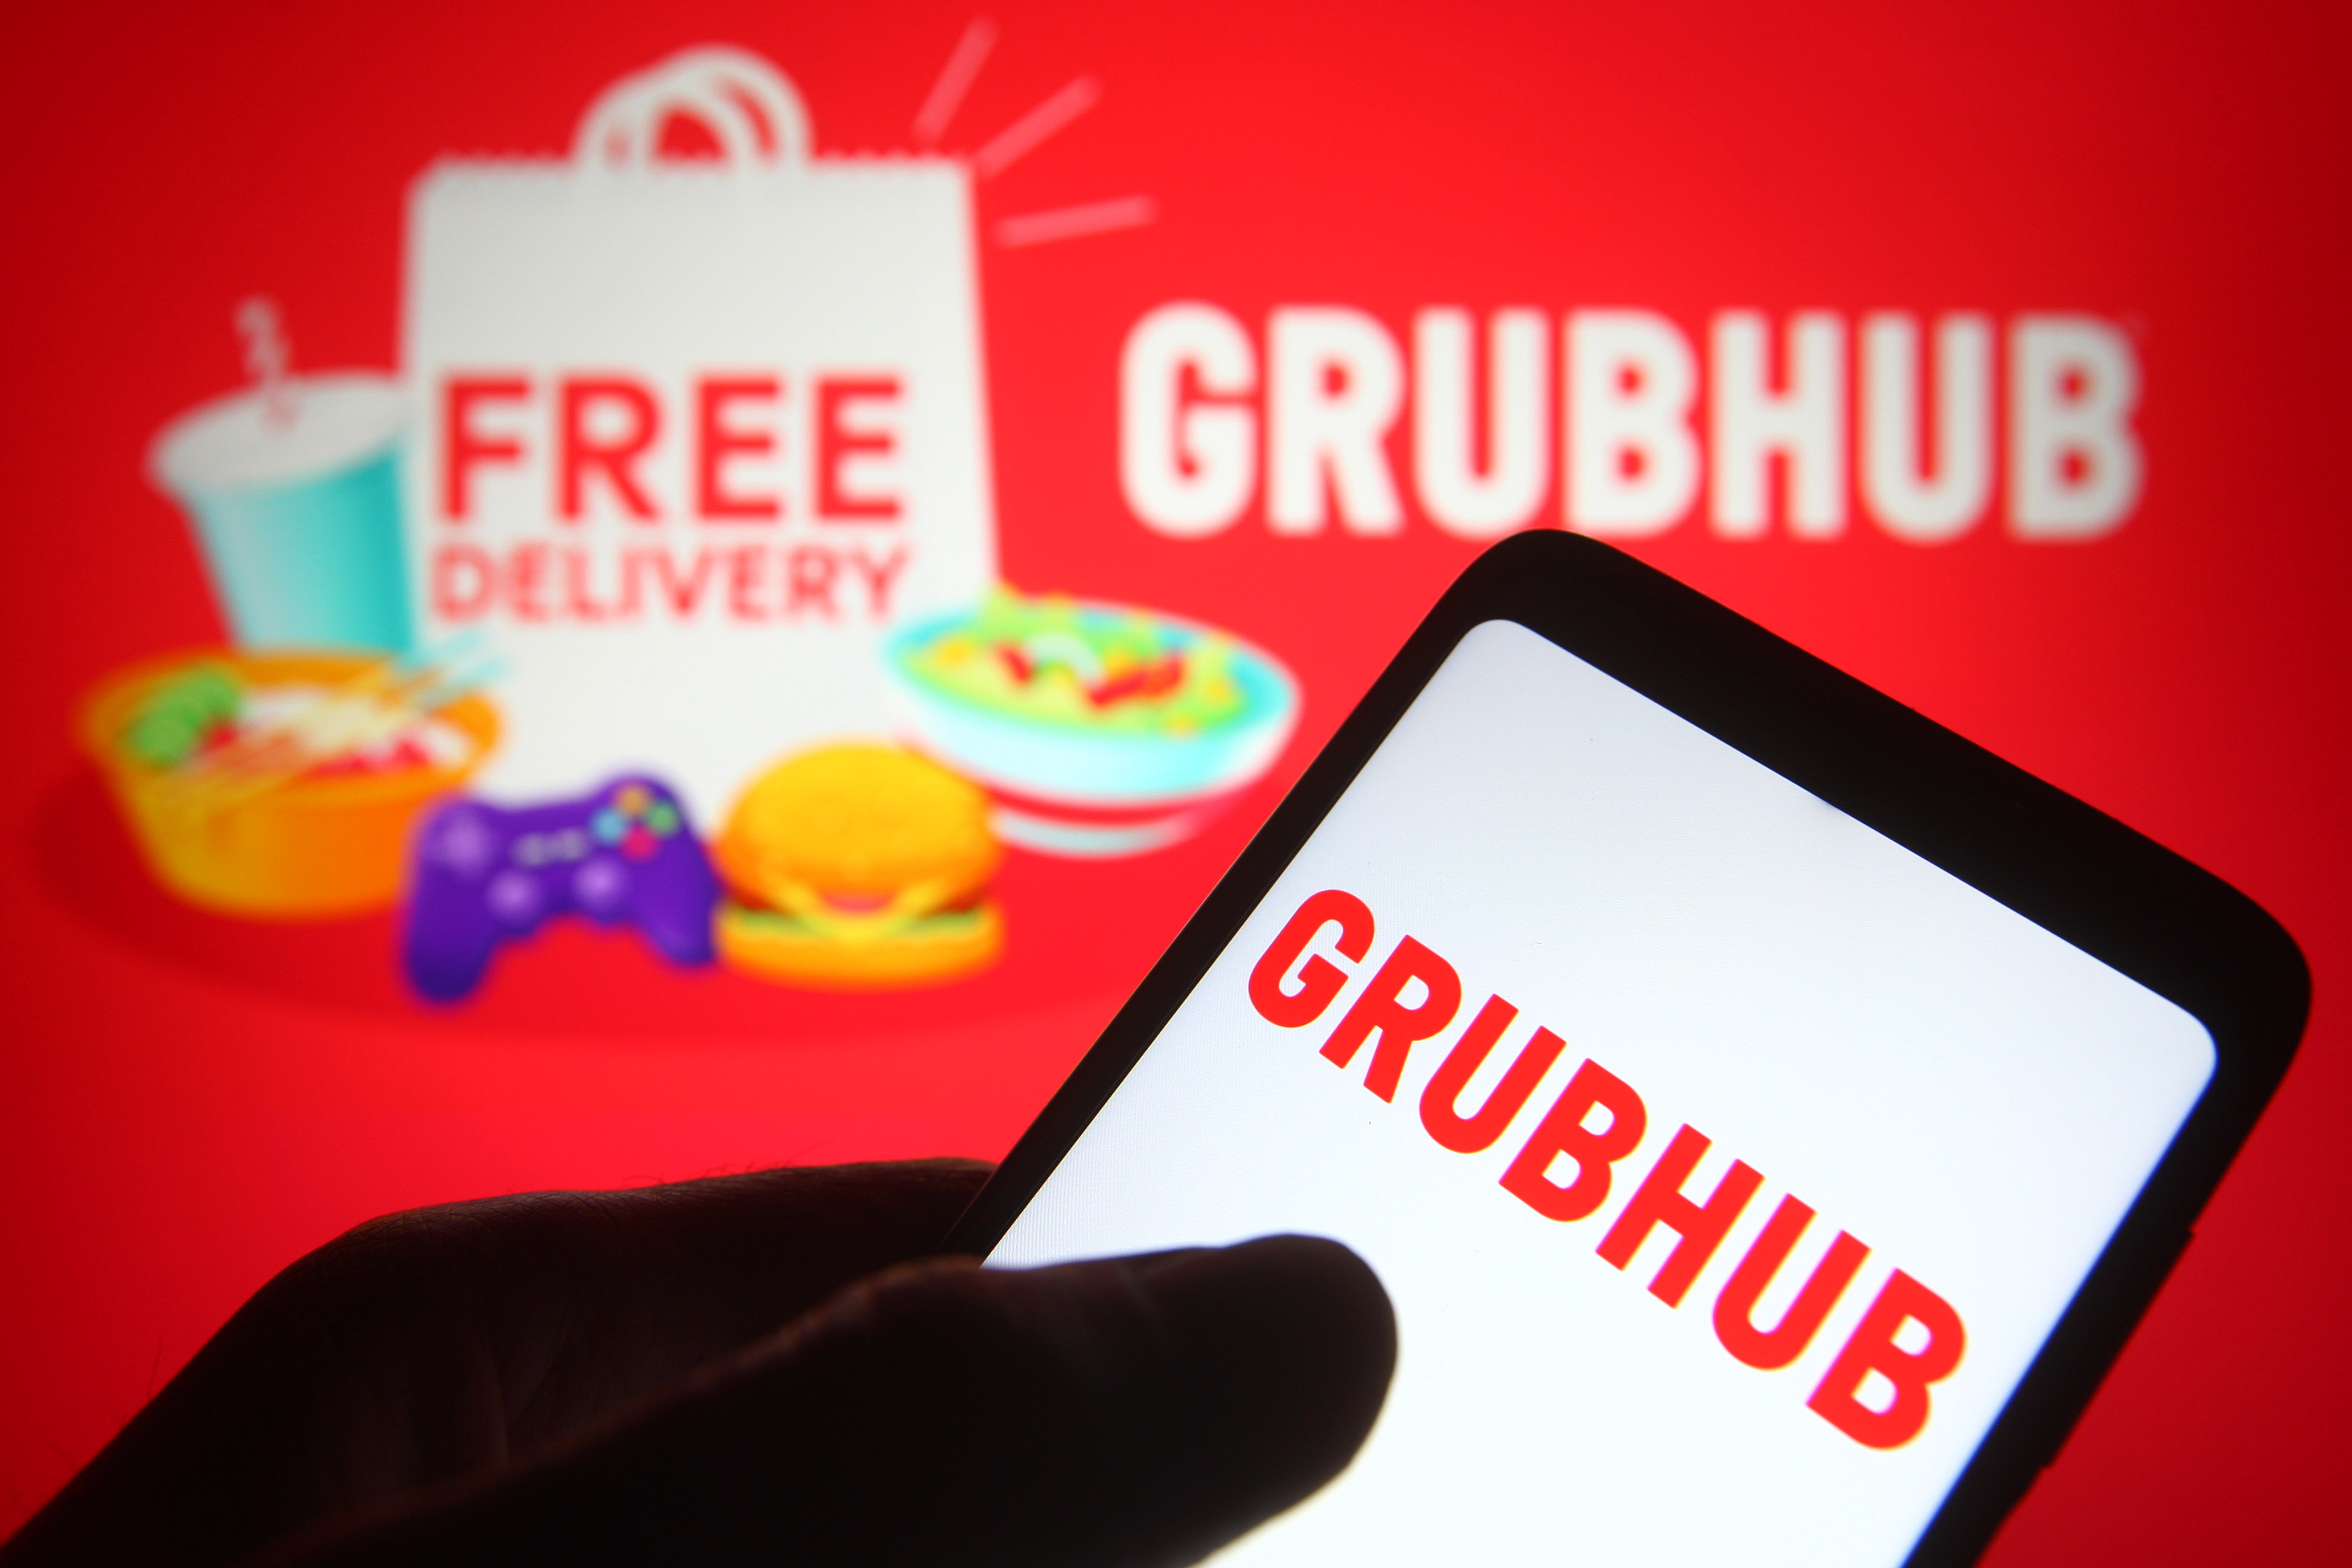 In this photo illustration, a hand swipes on the Grubhub logo on a phone.